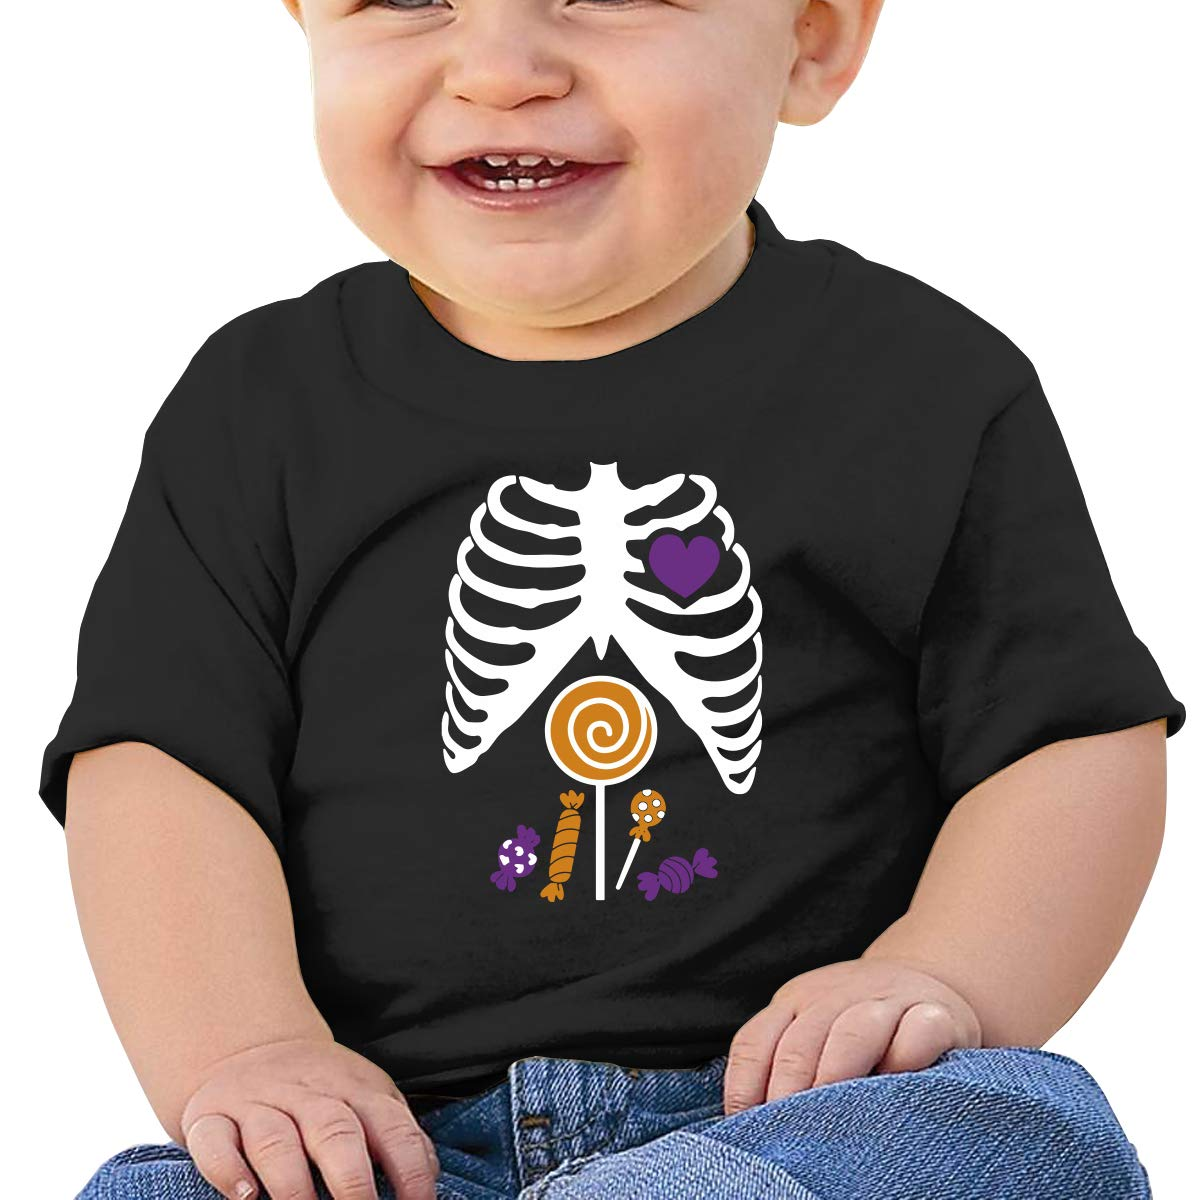 Skeleton Candy Rib-cage X-Ray Halloween Funny Baby Boys Girls Short Sleeve Crew Neck T-Shirt 6-18 Month Tops